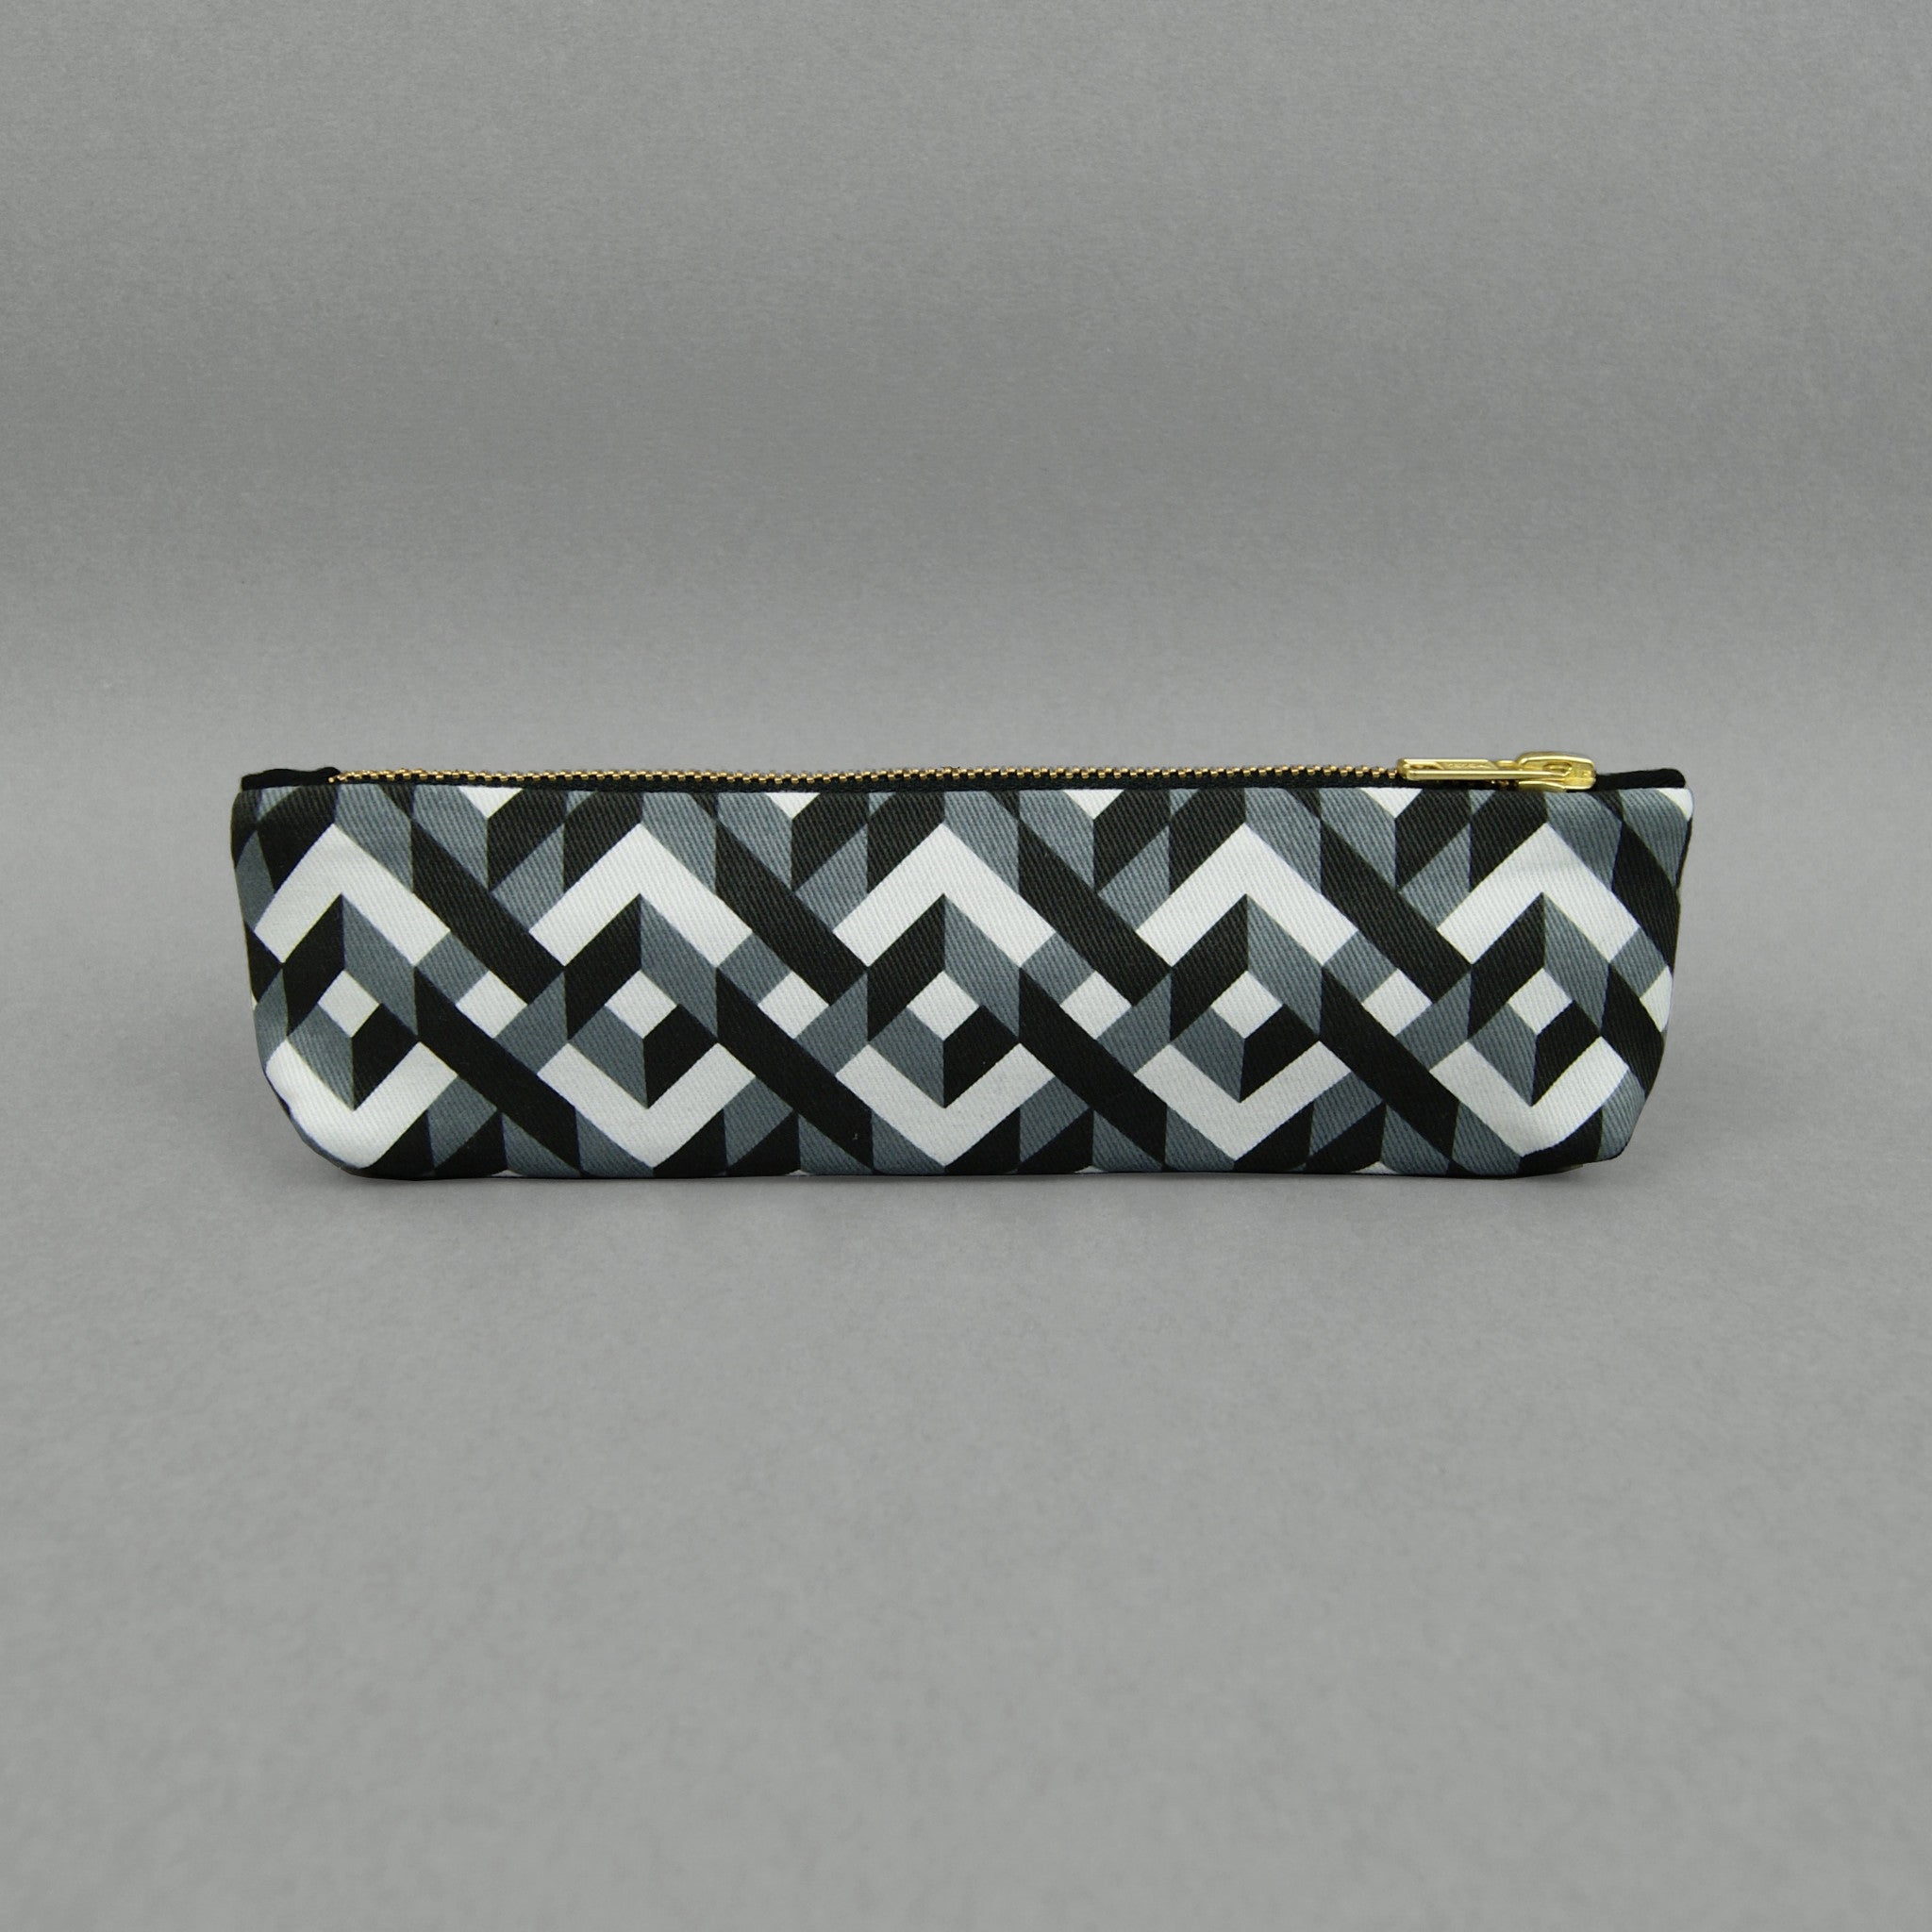 Small Chains Case